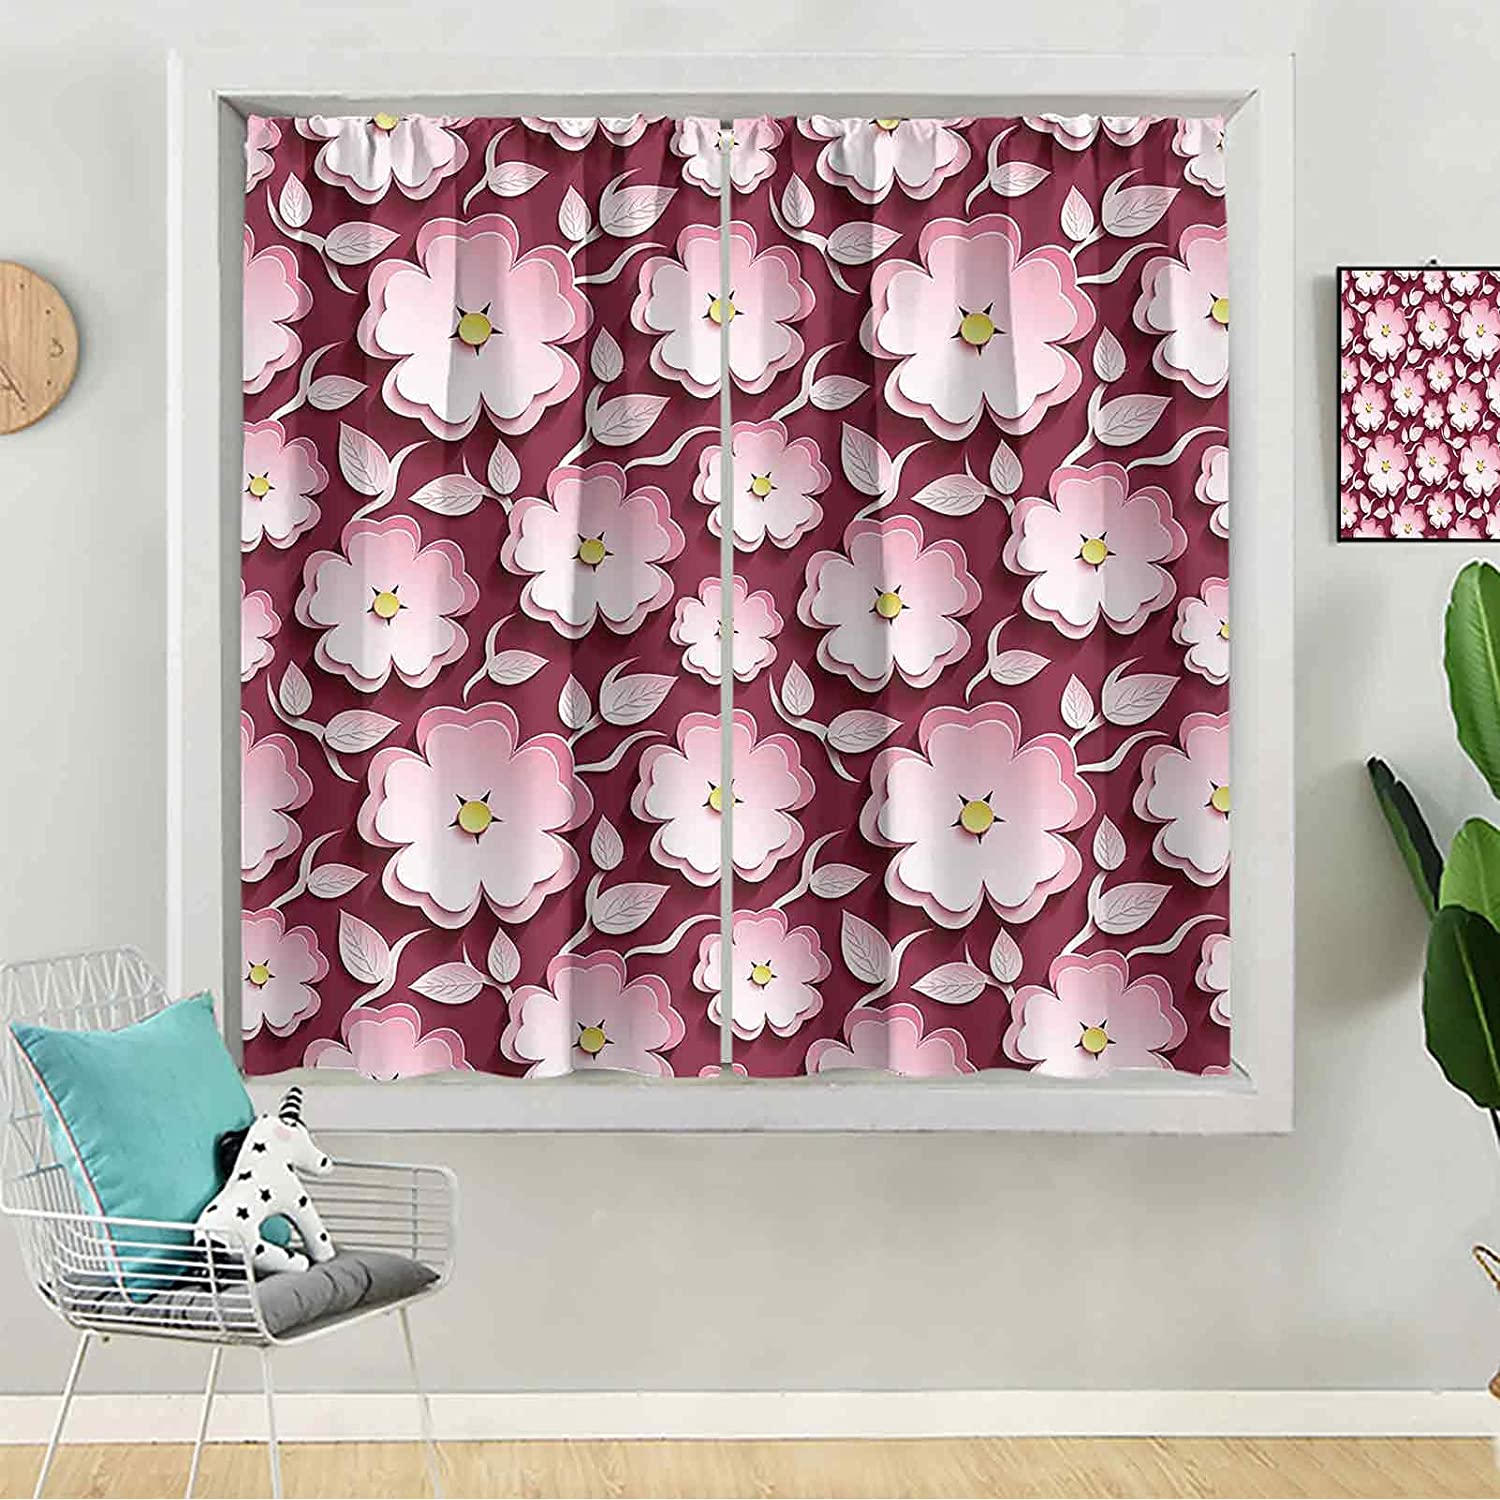 Curtains for Cheap super special price Bedroom Trendy Max 61% OFF Background Romantic Seamless Maroon